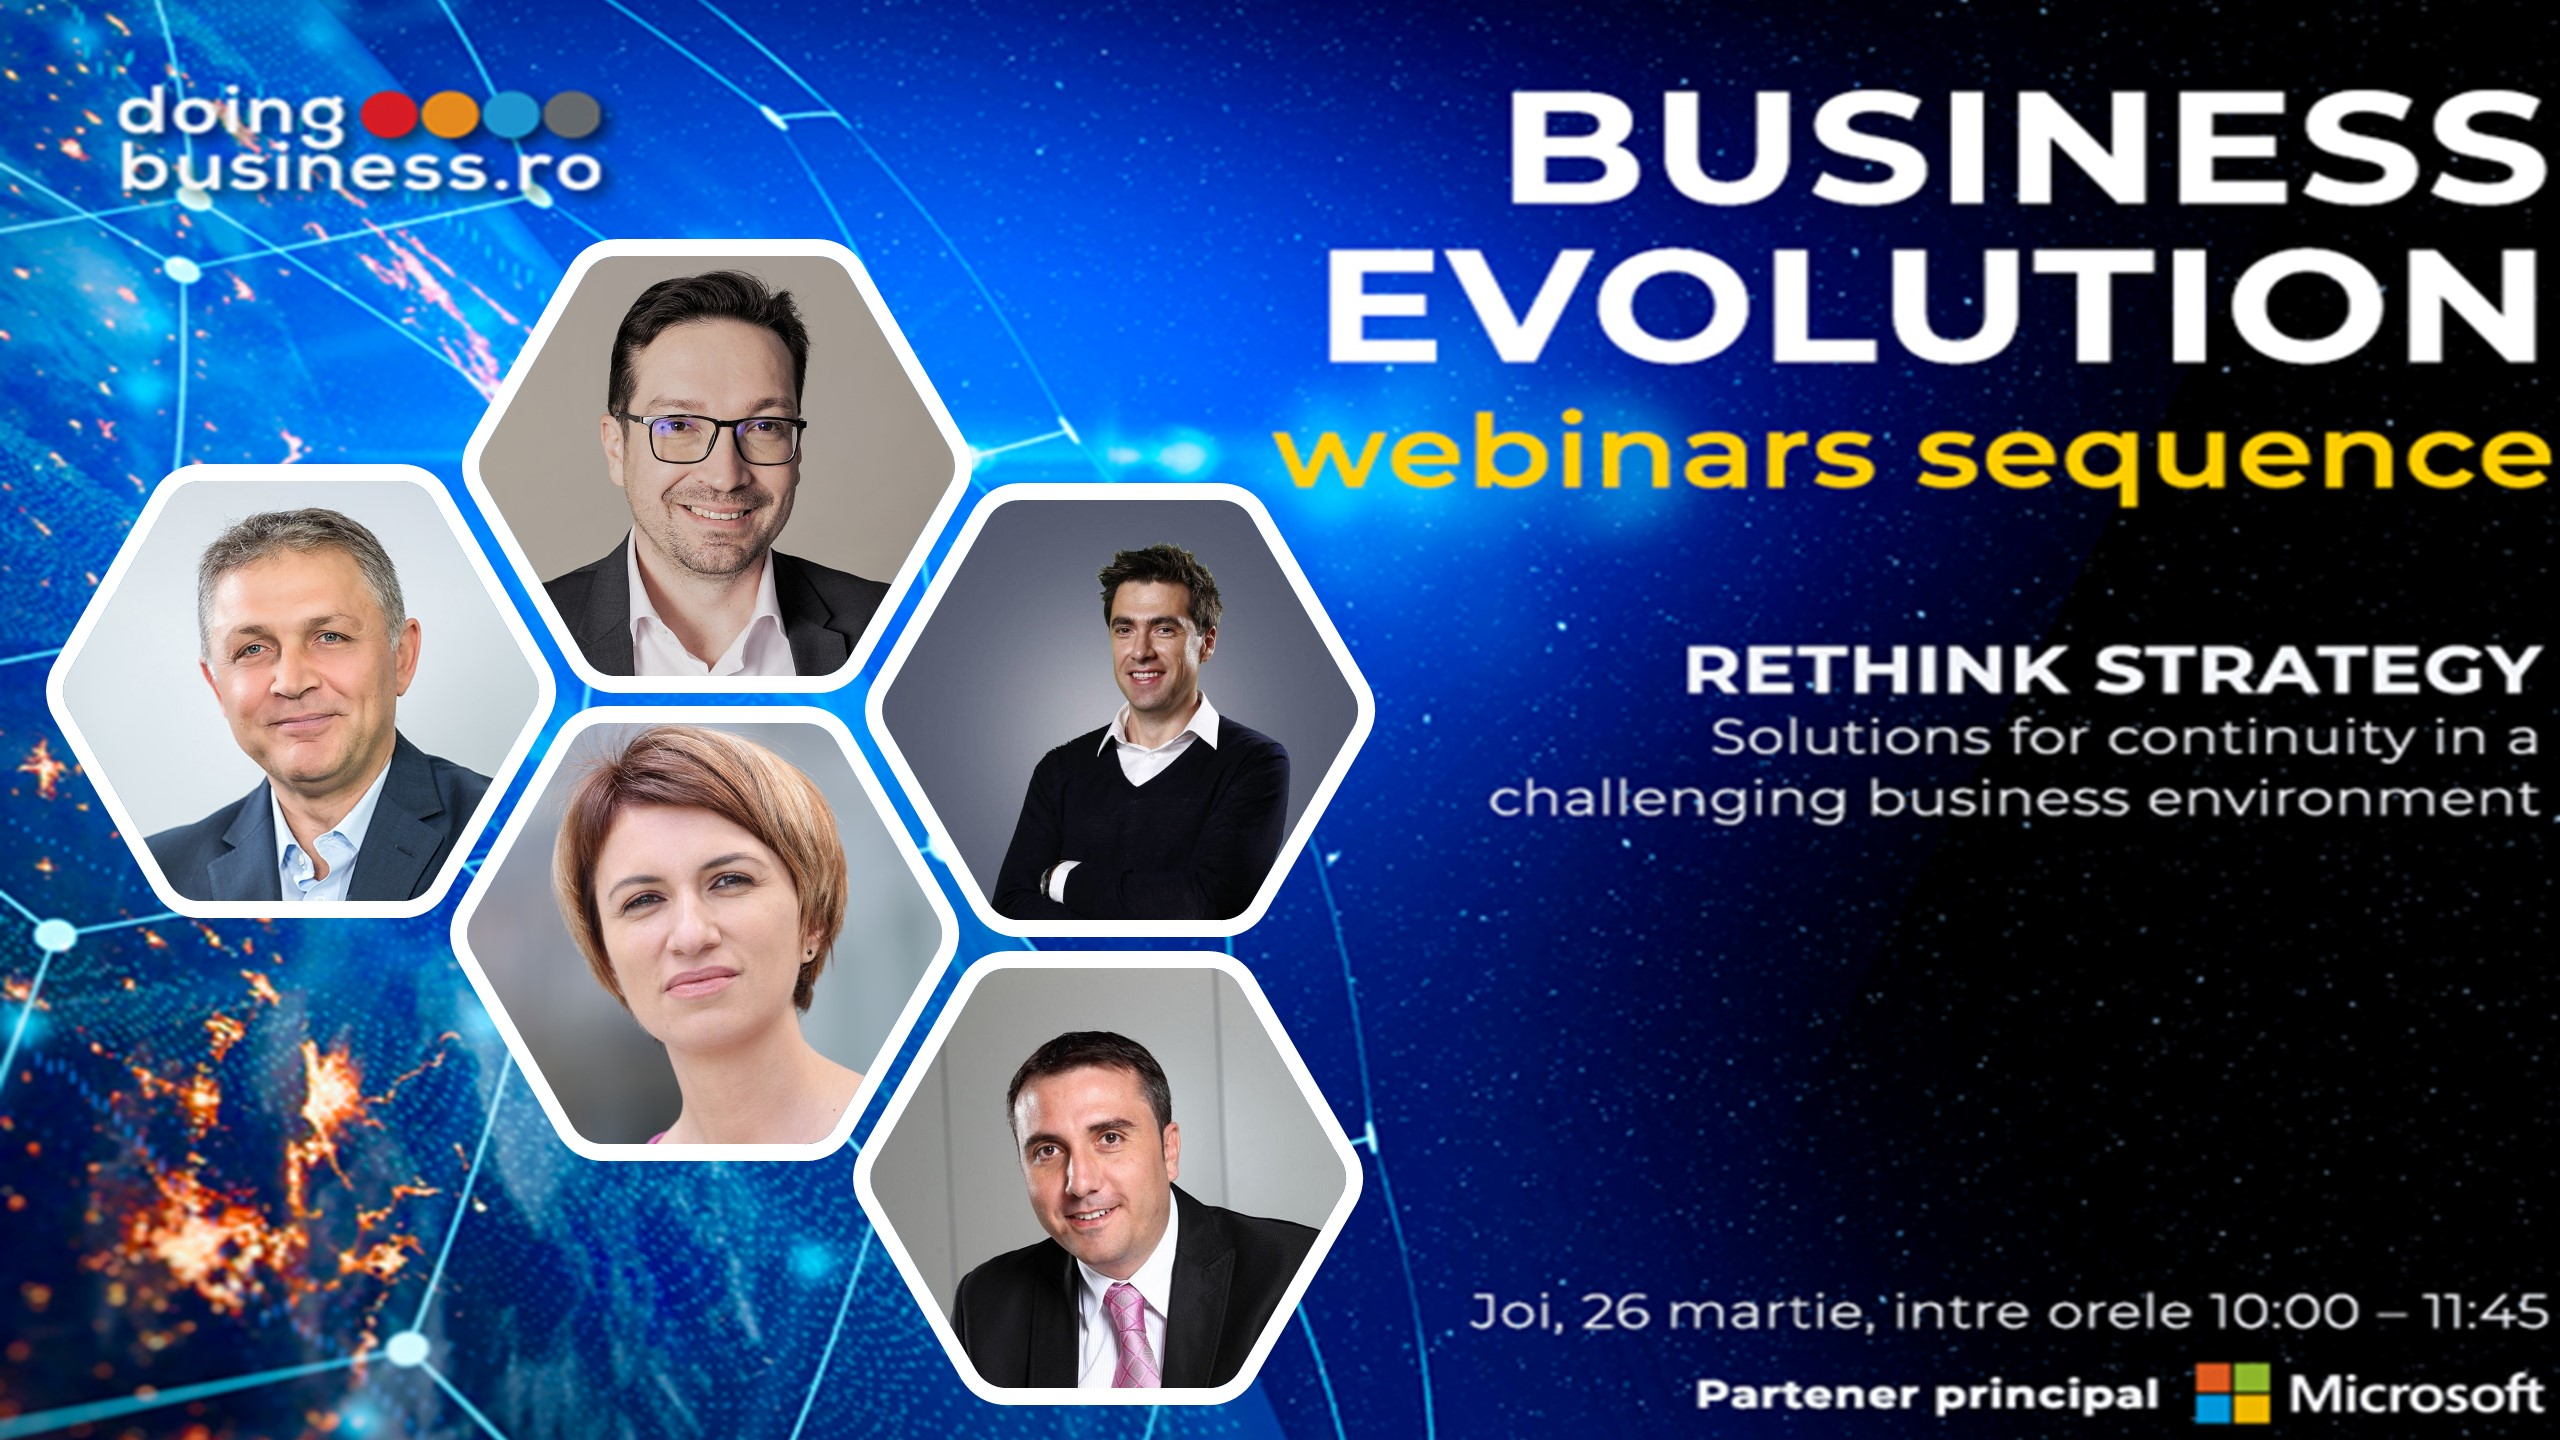 WEBINAR - Rethink Strategy – Continuity, Challenges and Opportunities